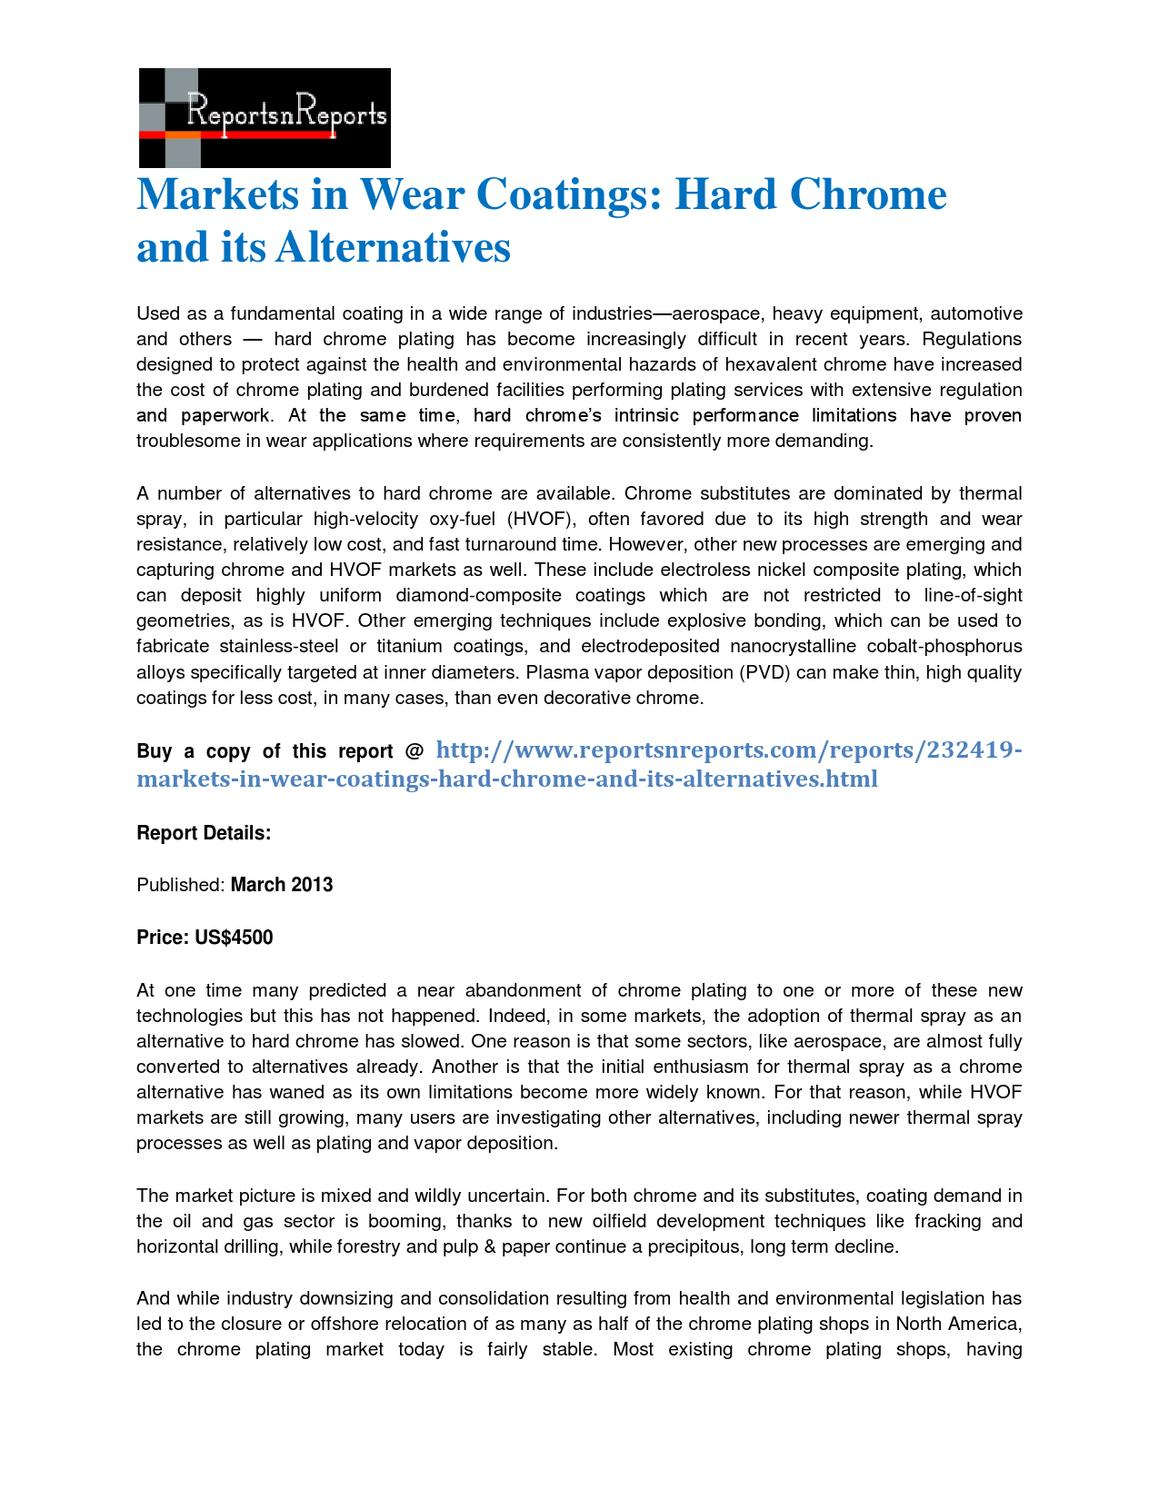 Markets in Wear Coatings: Hard Chrome and its Alternatives by lisa